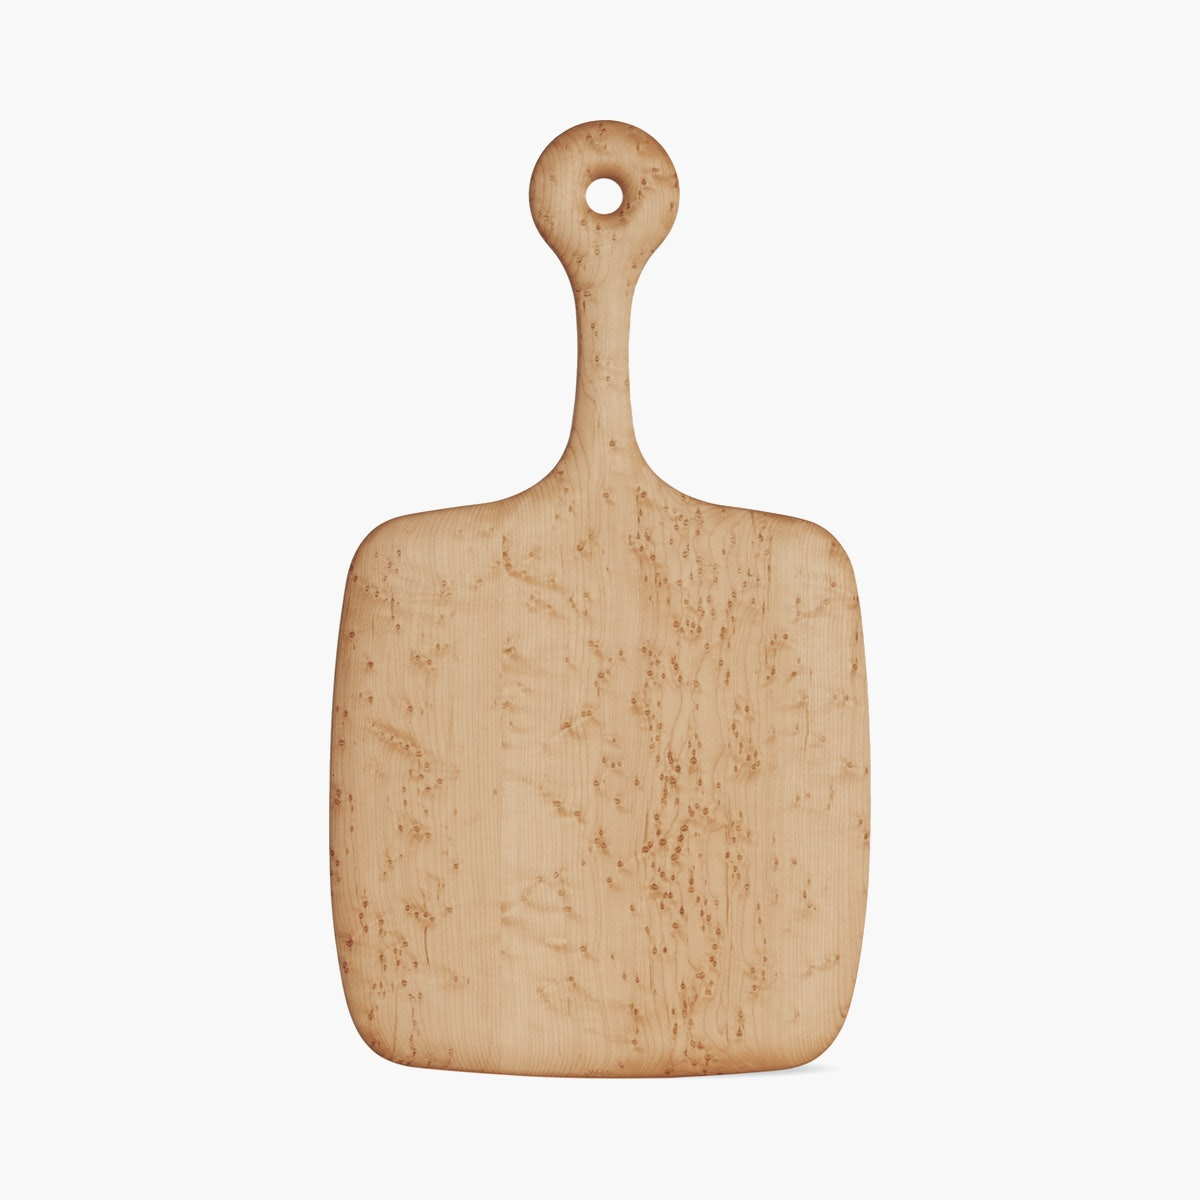 Edward Wohl Cutting Boards, Board with Handle